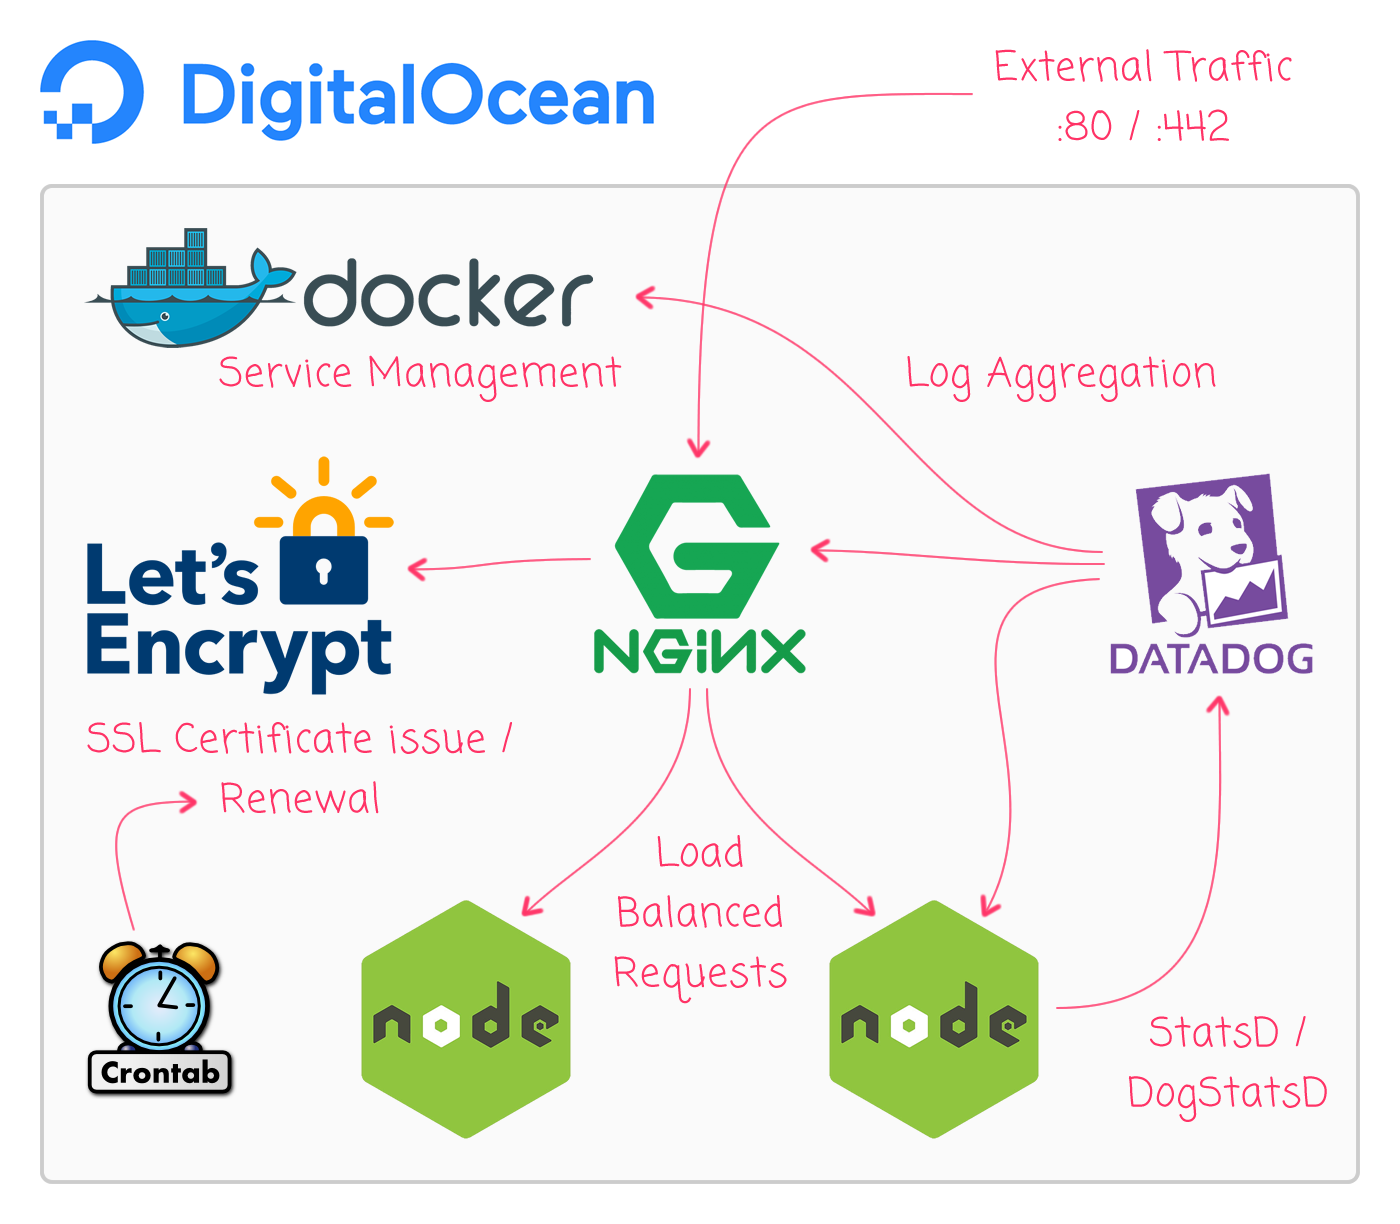 Running Docker on DigitalOcean with Nginx, Node.js, DataDog, and LetsEncrypt.